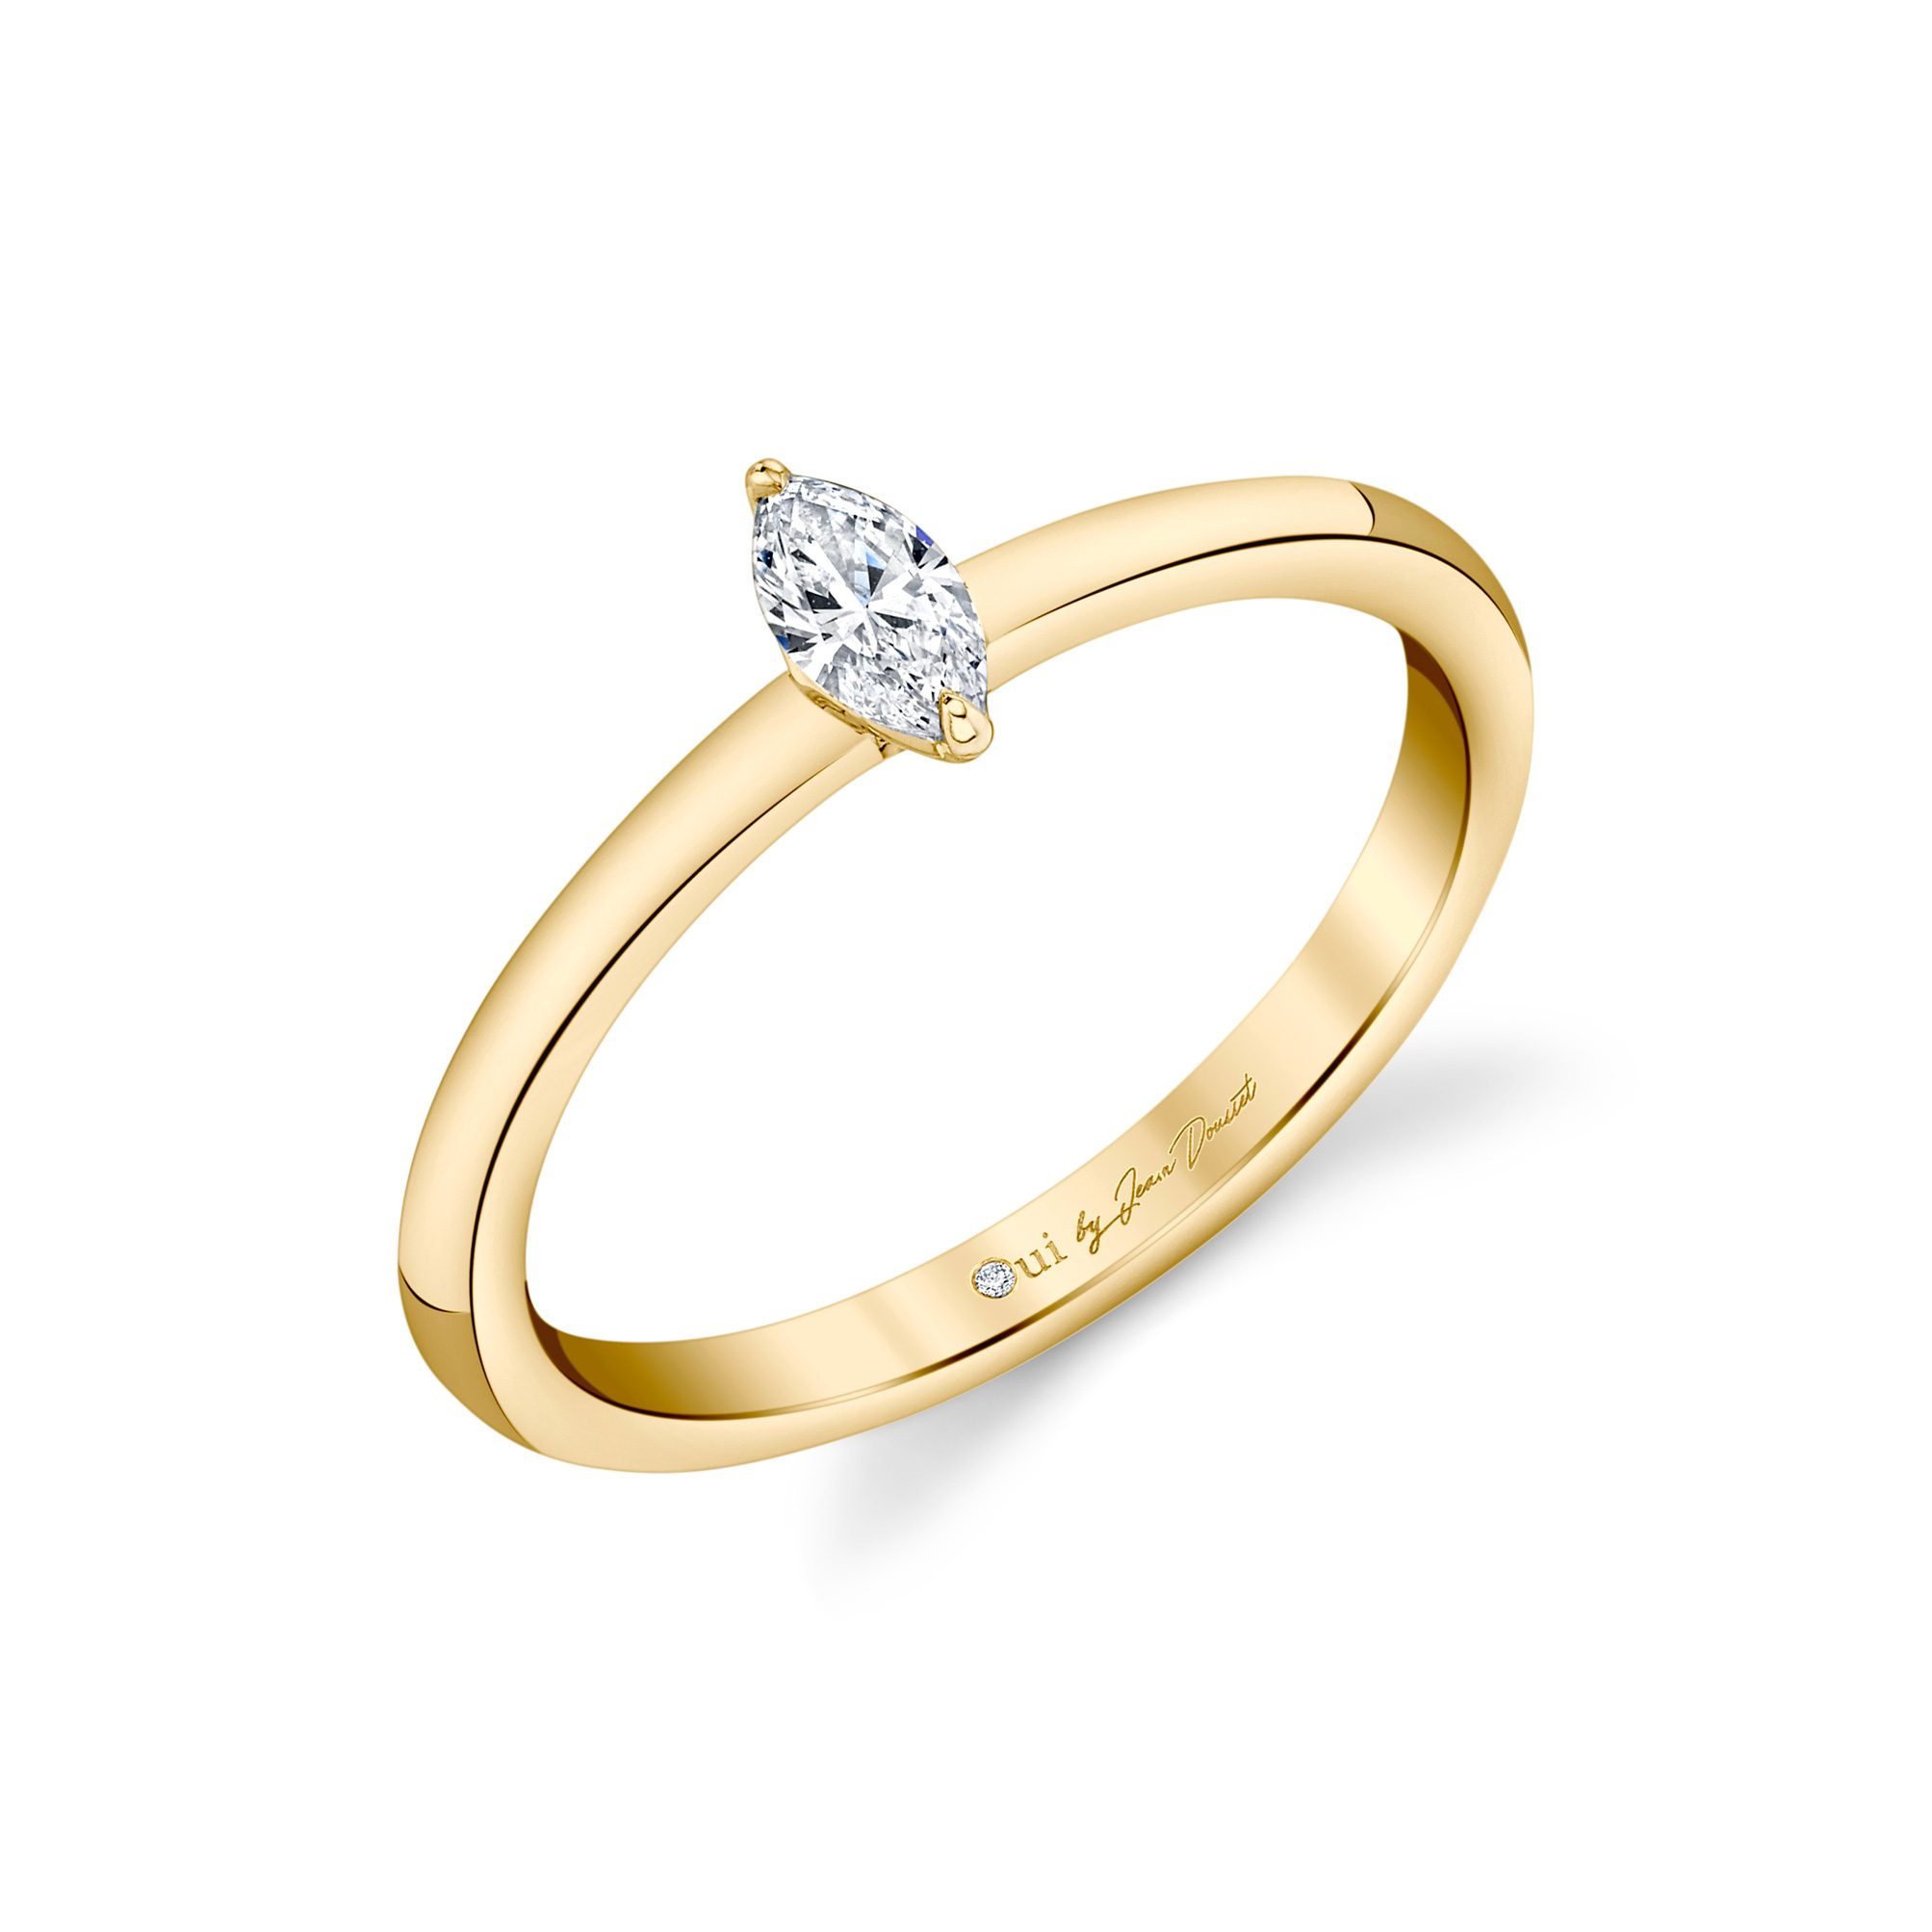 La Petite Marquise Diamond Wedding Band in 18k Yellow Gold Standing View by Oui by Jean Dousset